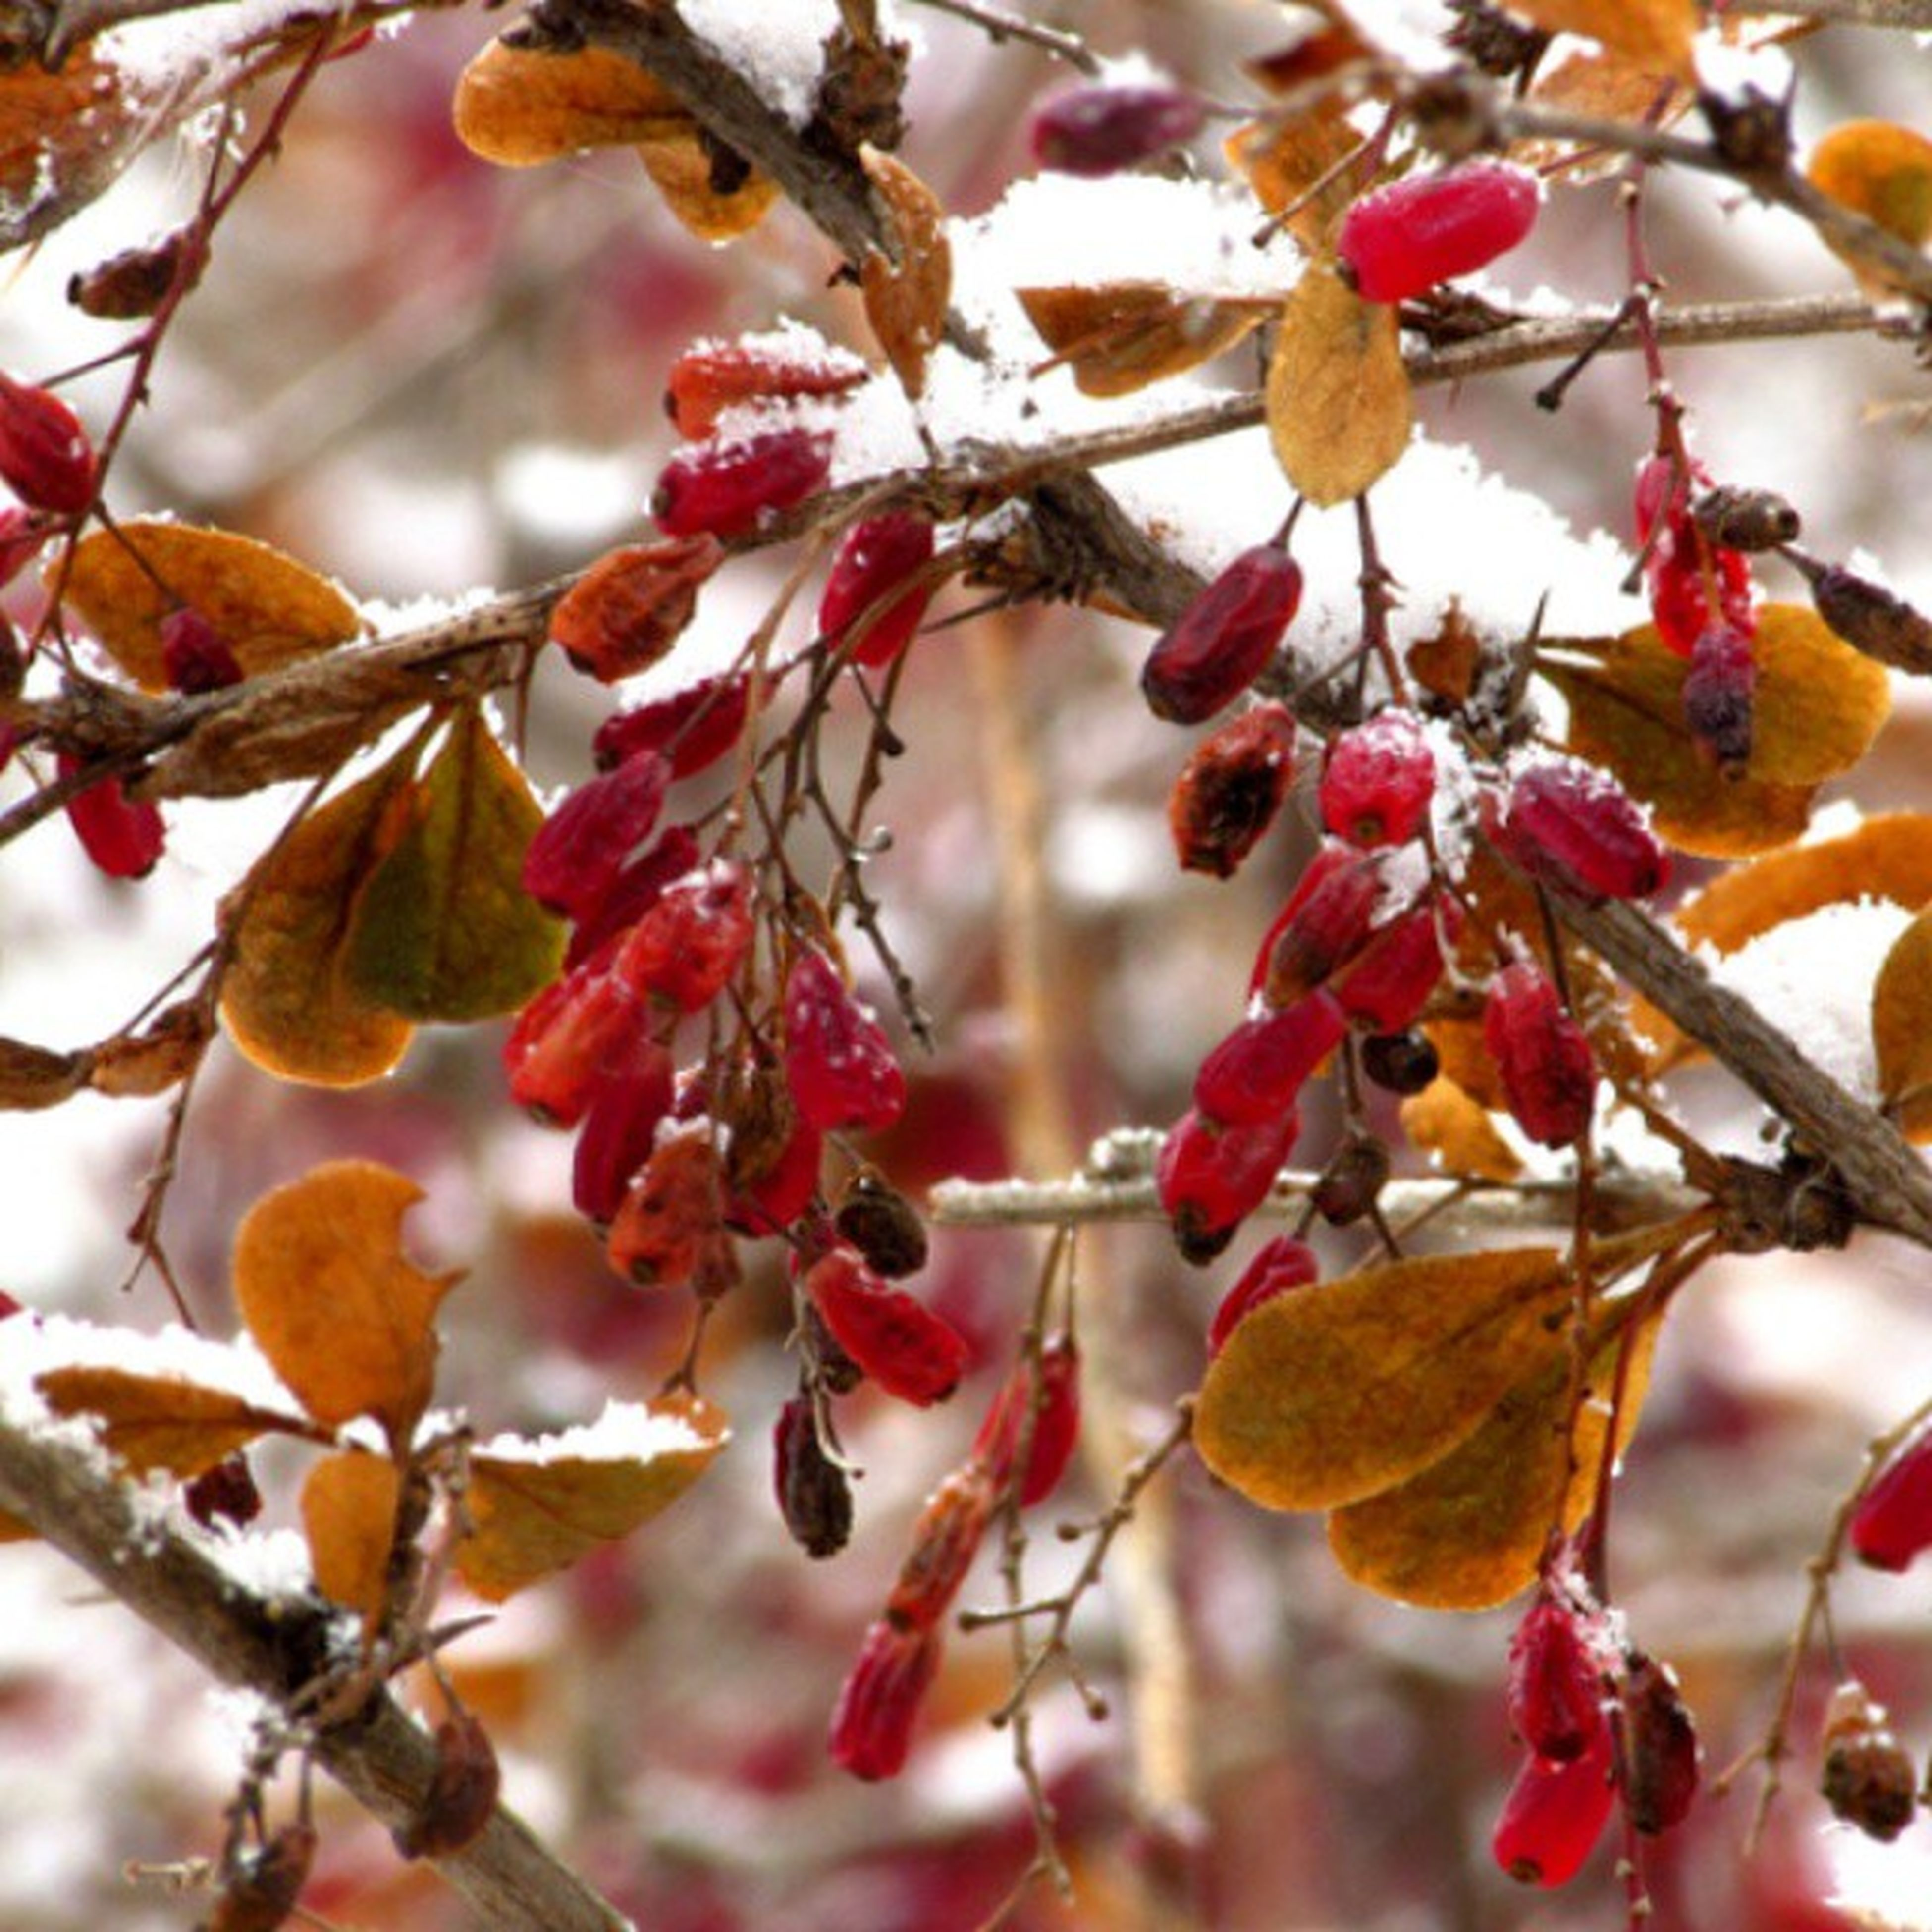 branch, red, tree, fruit, growth, leaf, twig, season, focus on foreground, nature, close-up, freshness, berry, berry fruit, beauty in nature, autumn, cherry tree, change, day, cherry